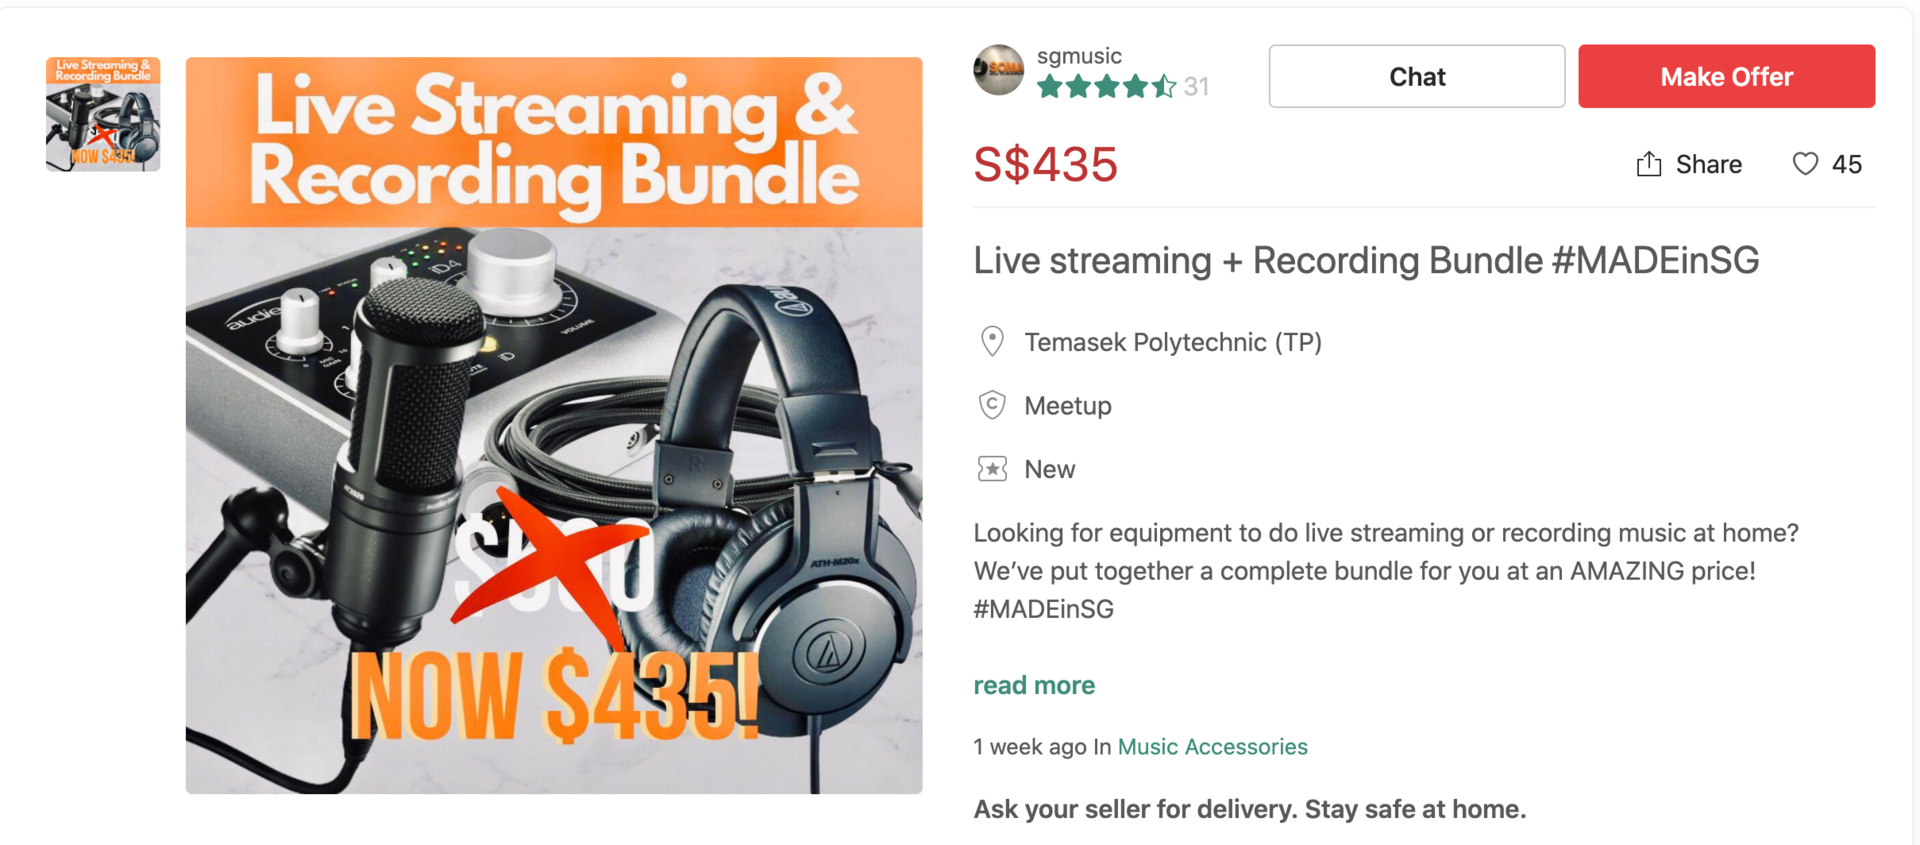 MADE in SG Carousell Livestreaming & Recording bundle